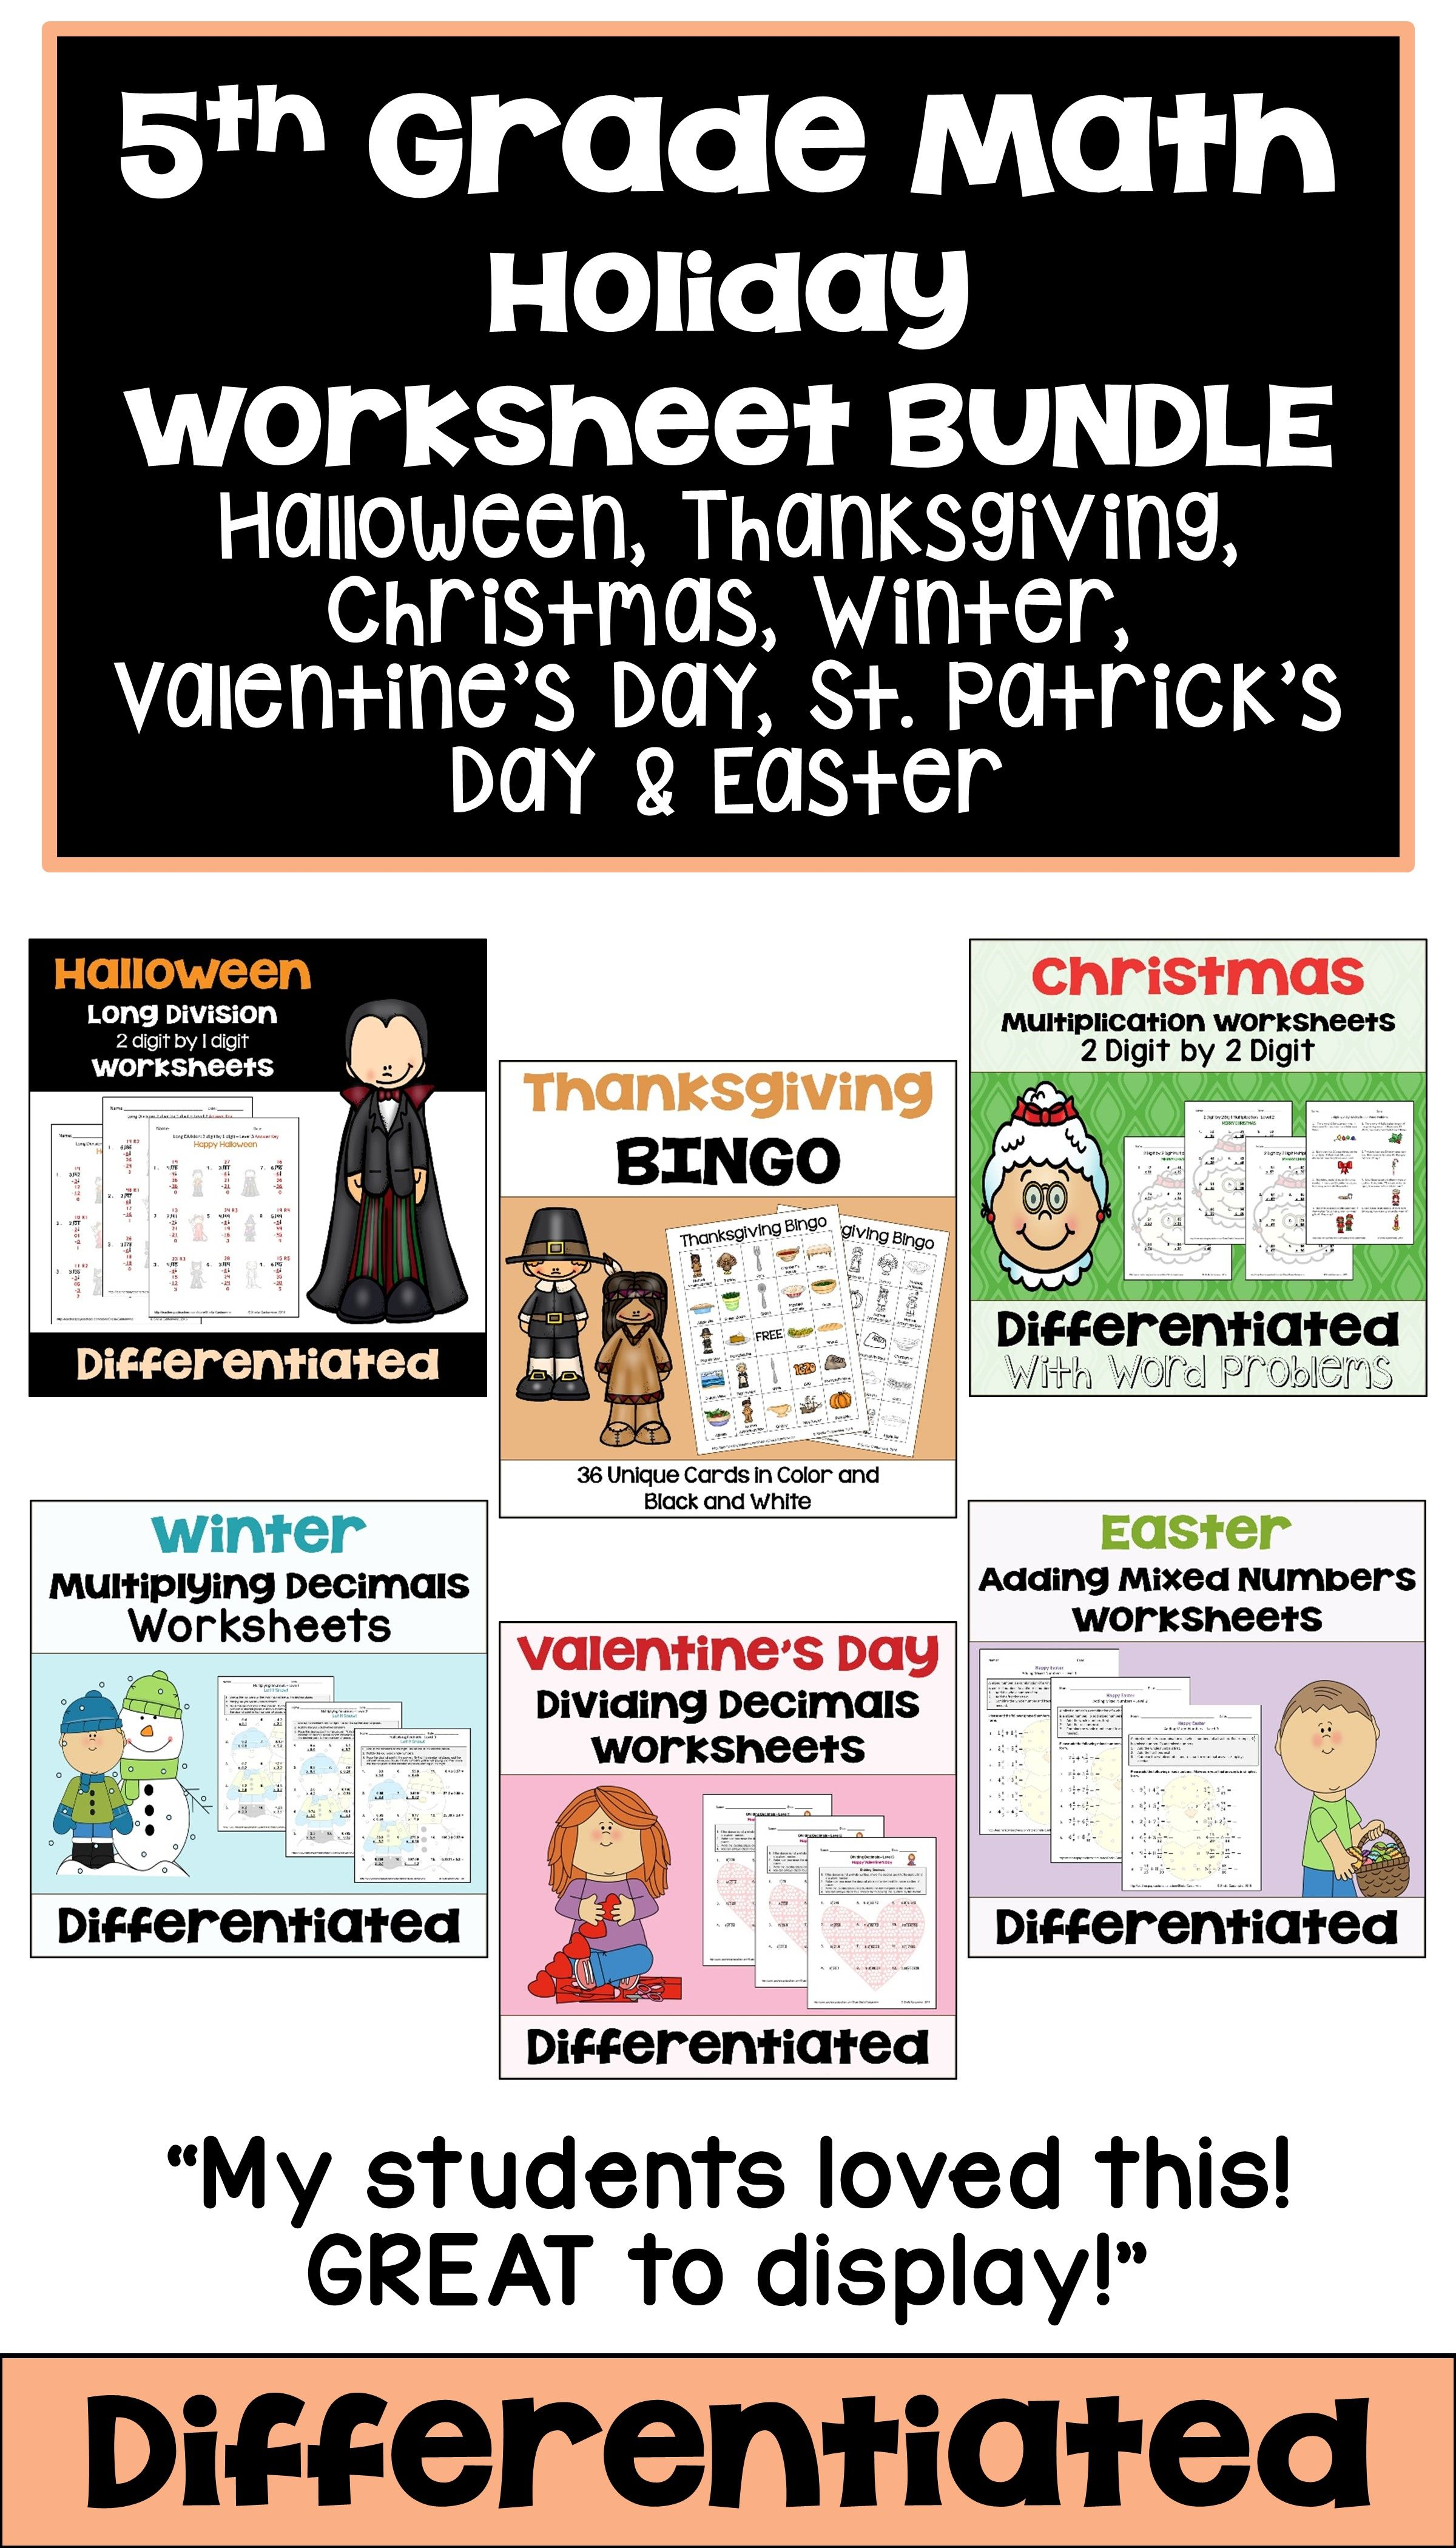 This 5th Grade Math Holiday Worksheet Bundle Features